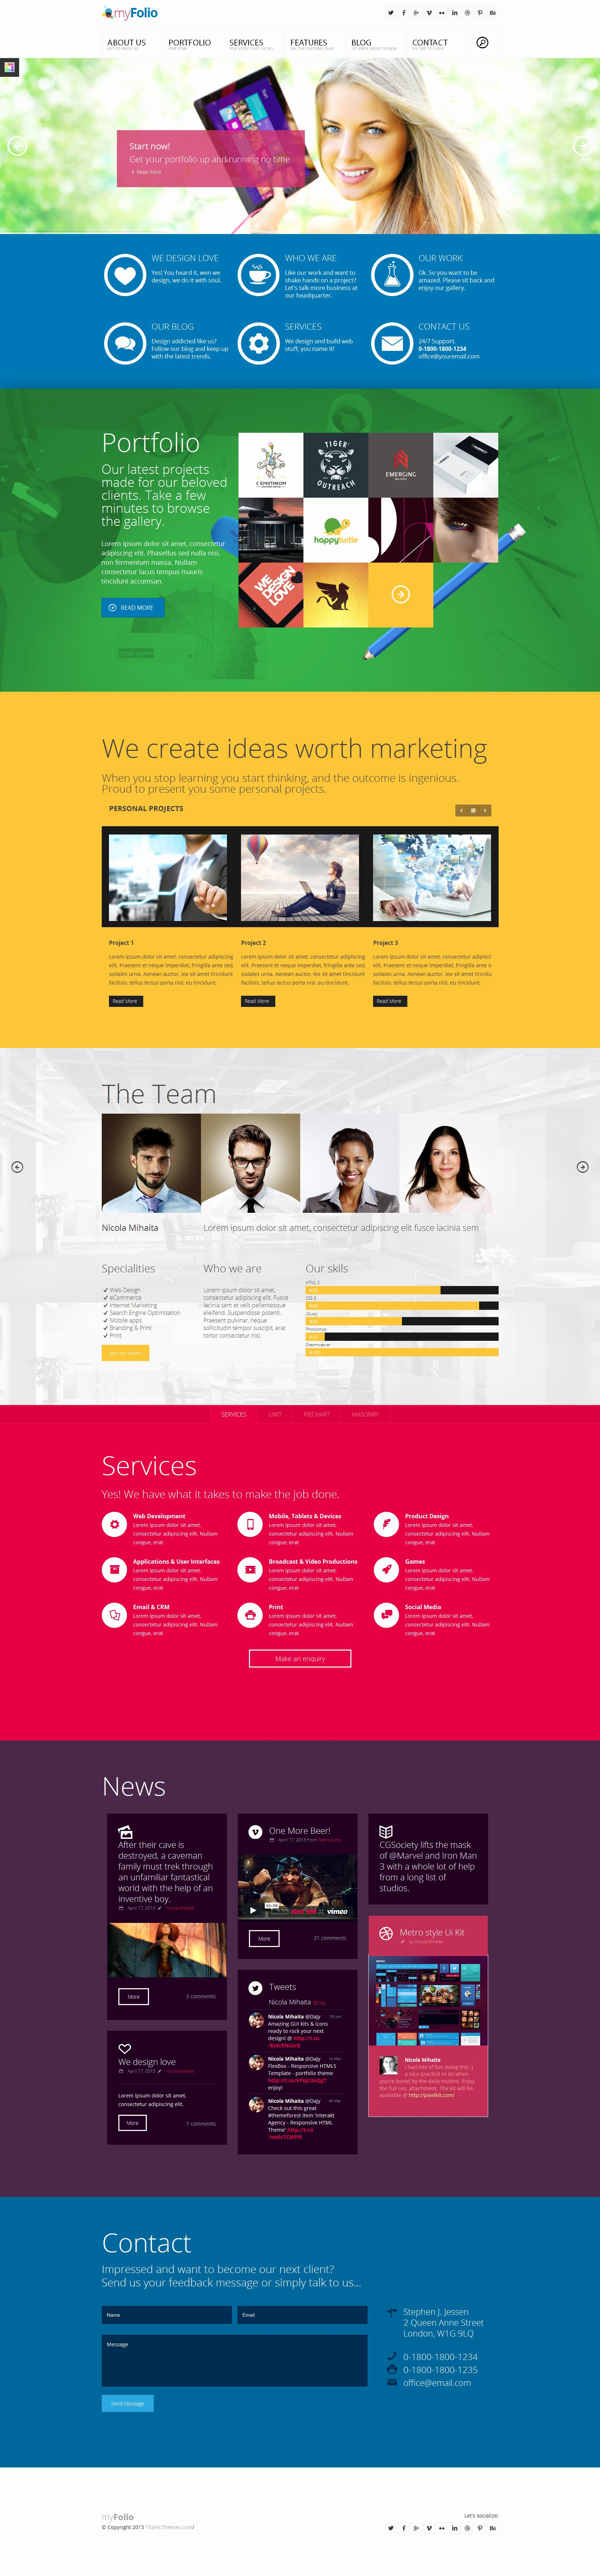 Free Parallax Website Template Inspirational Myfolio Parallax Epage HTML5 Template by Dajydesigns